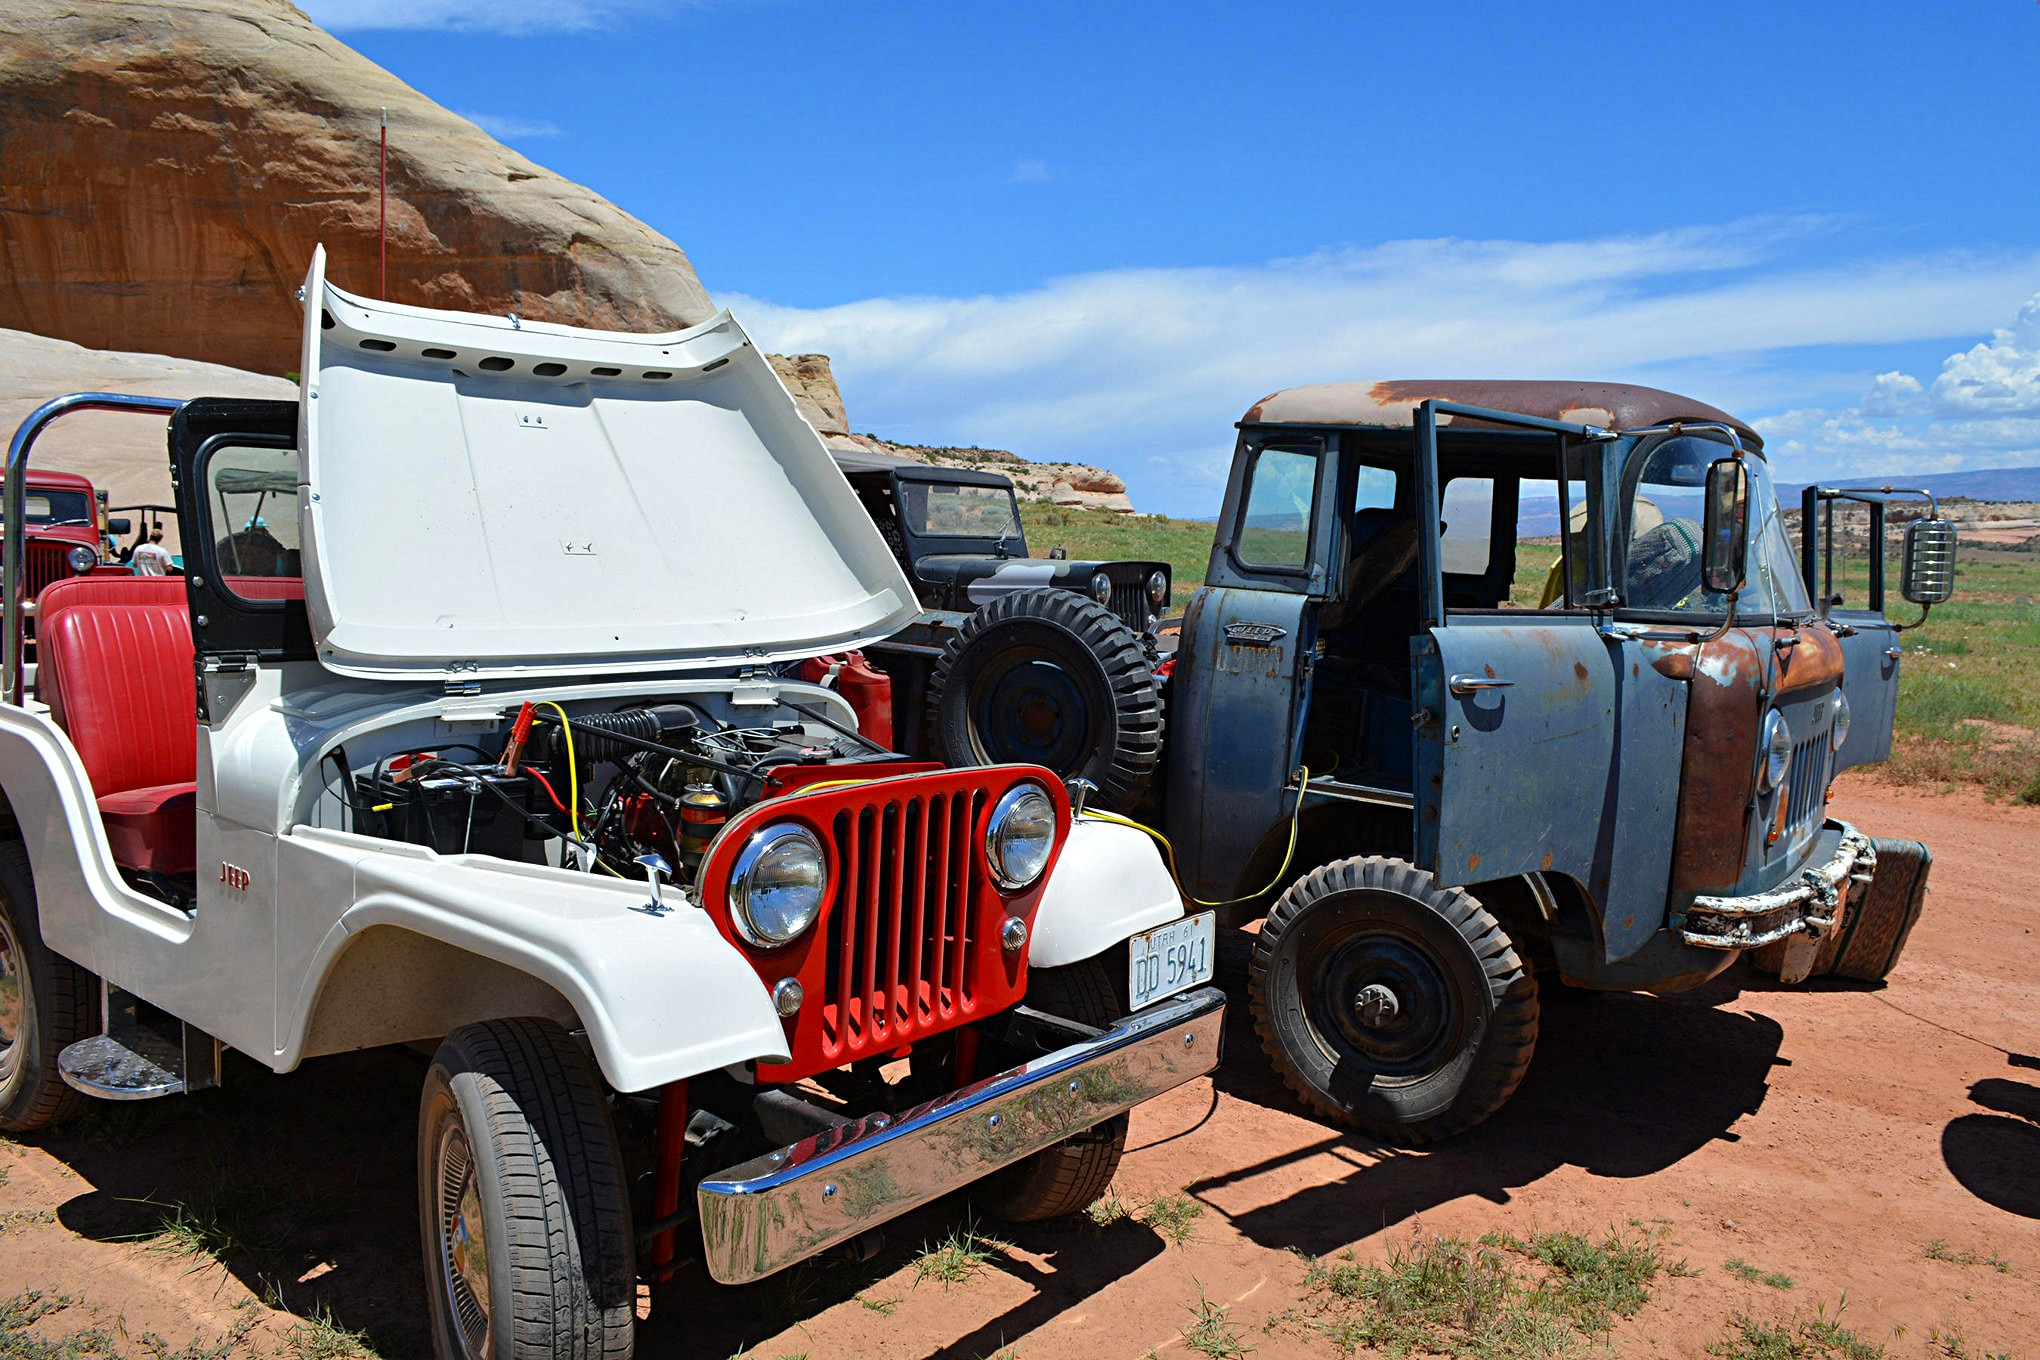 017 willys rally moab 2018 gallery.JPG